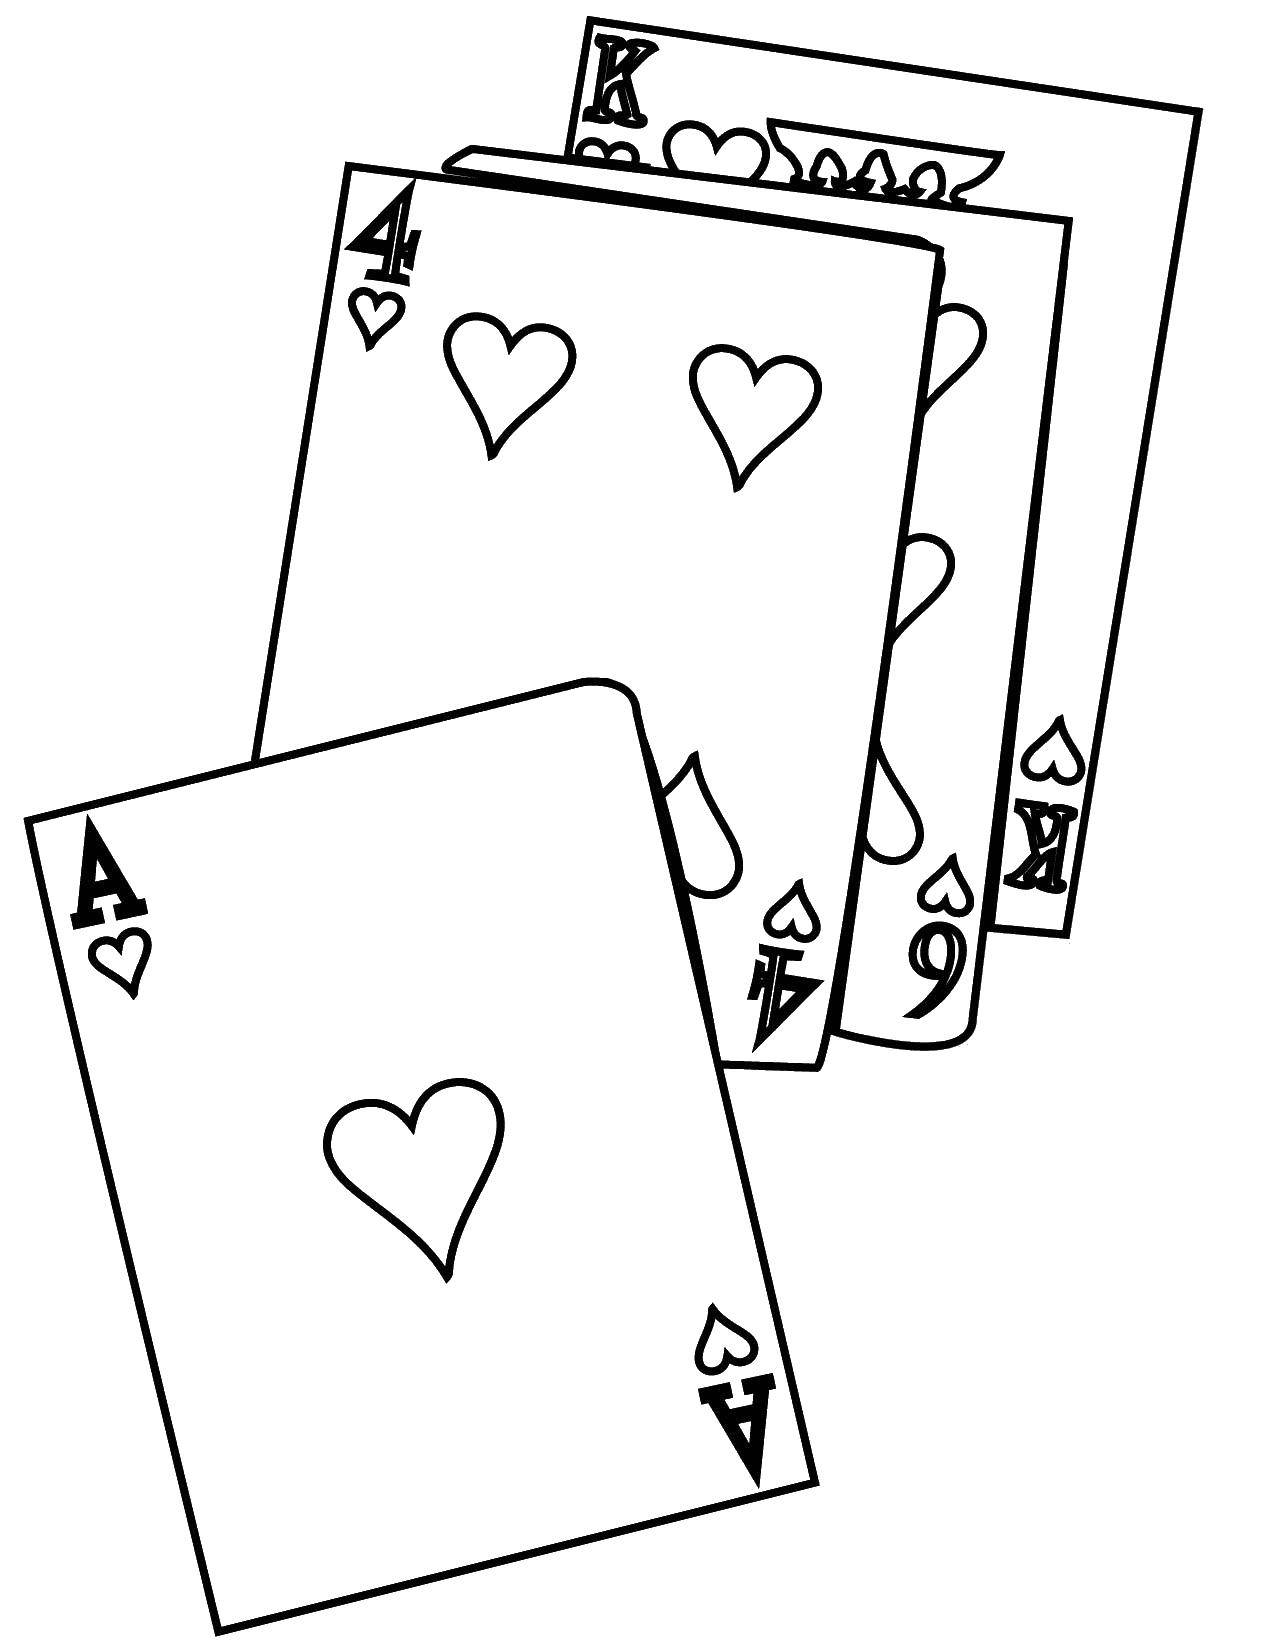 Coloring sheet game Download .  Print